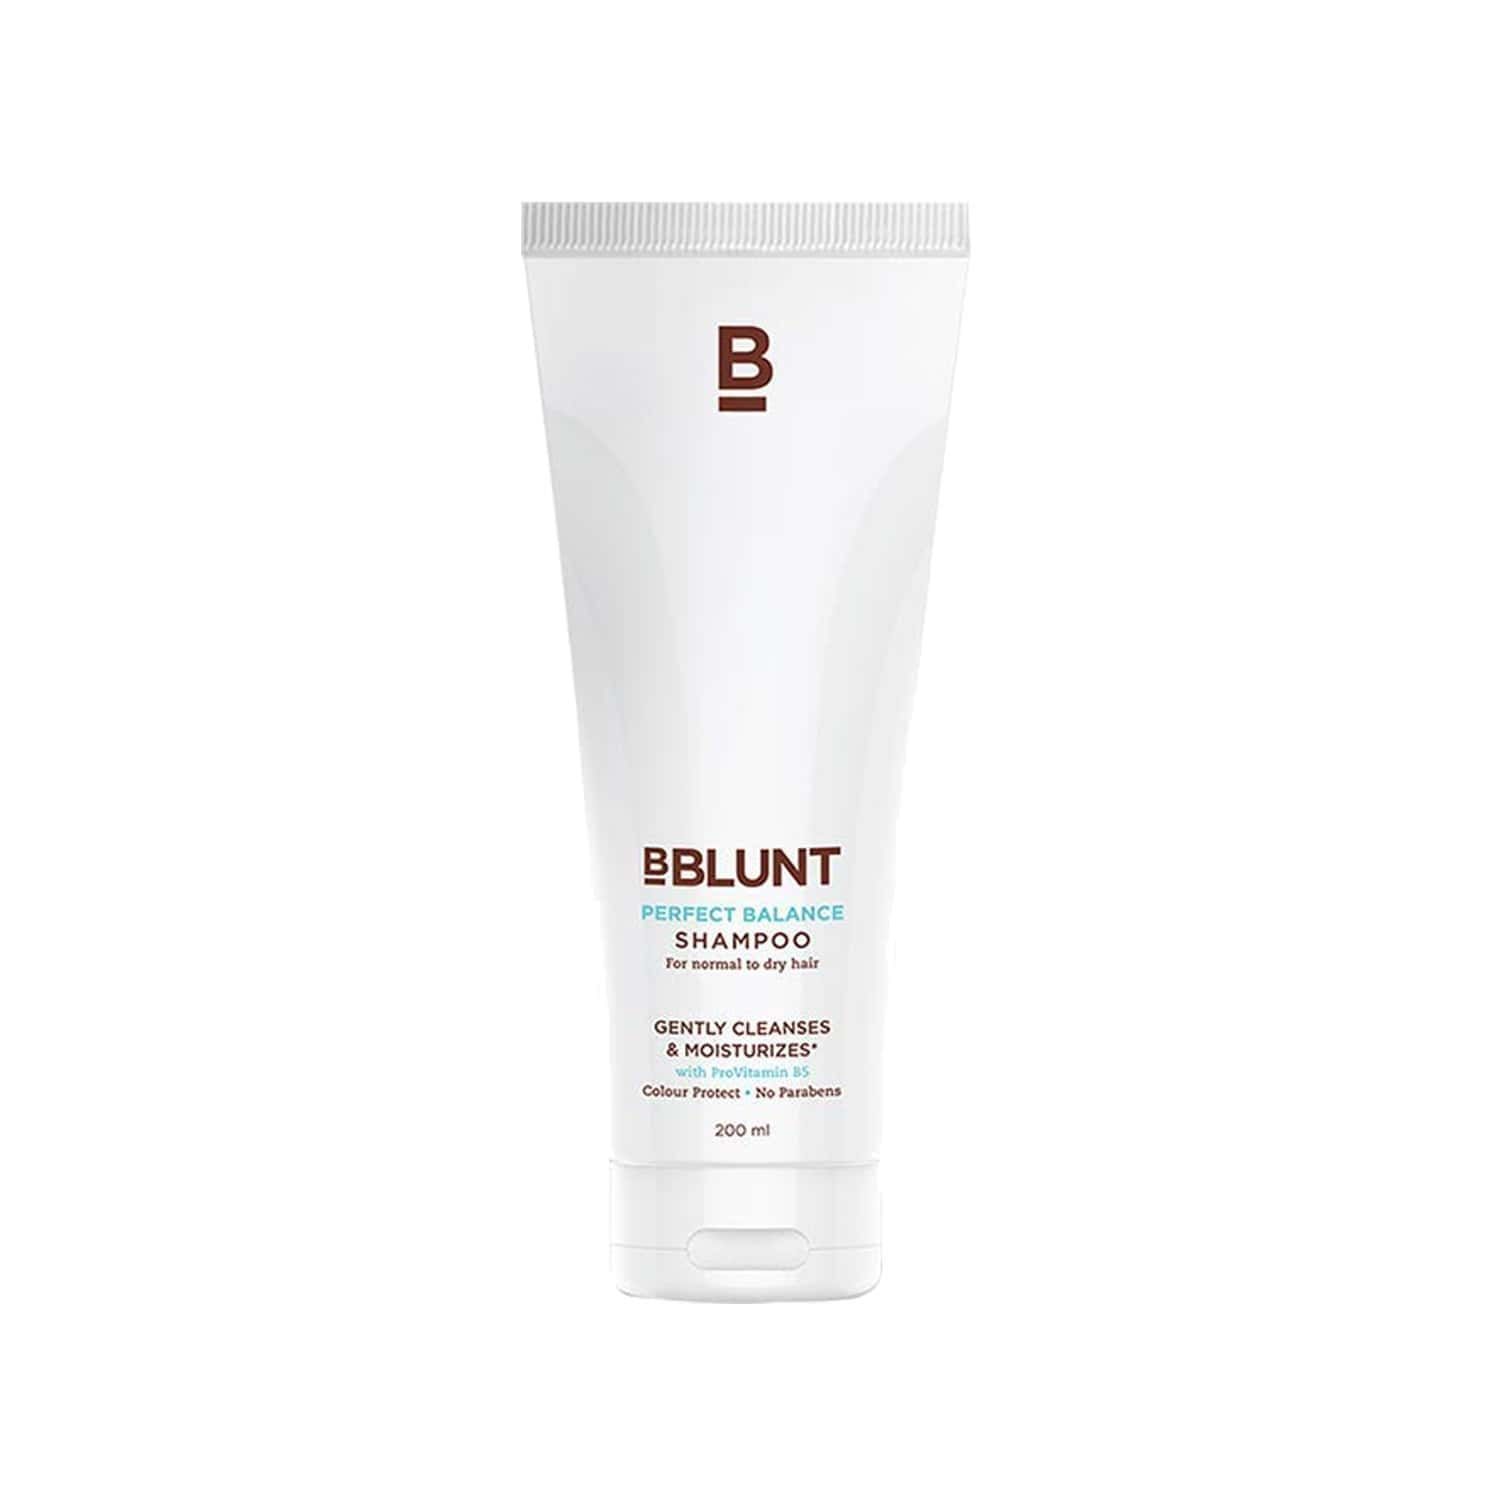 Bblunt Perfect Balance Shampoo For Normal To Dry Hair - 200 Ml